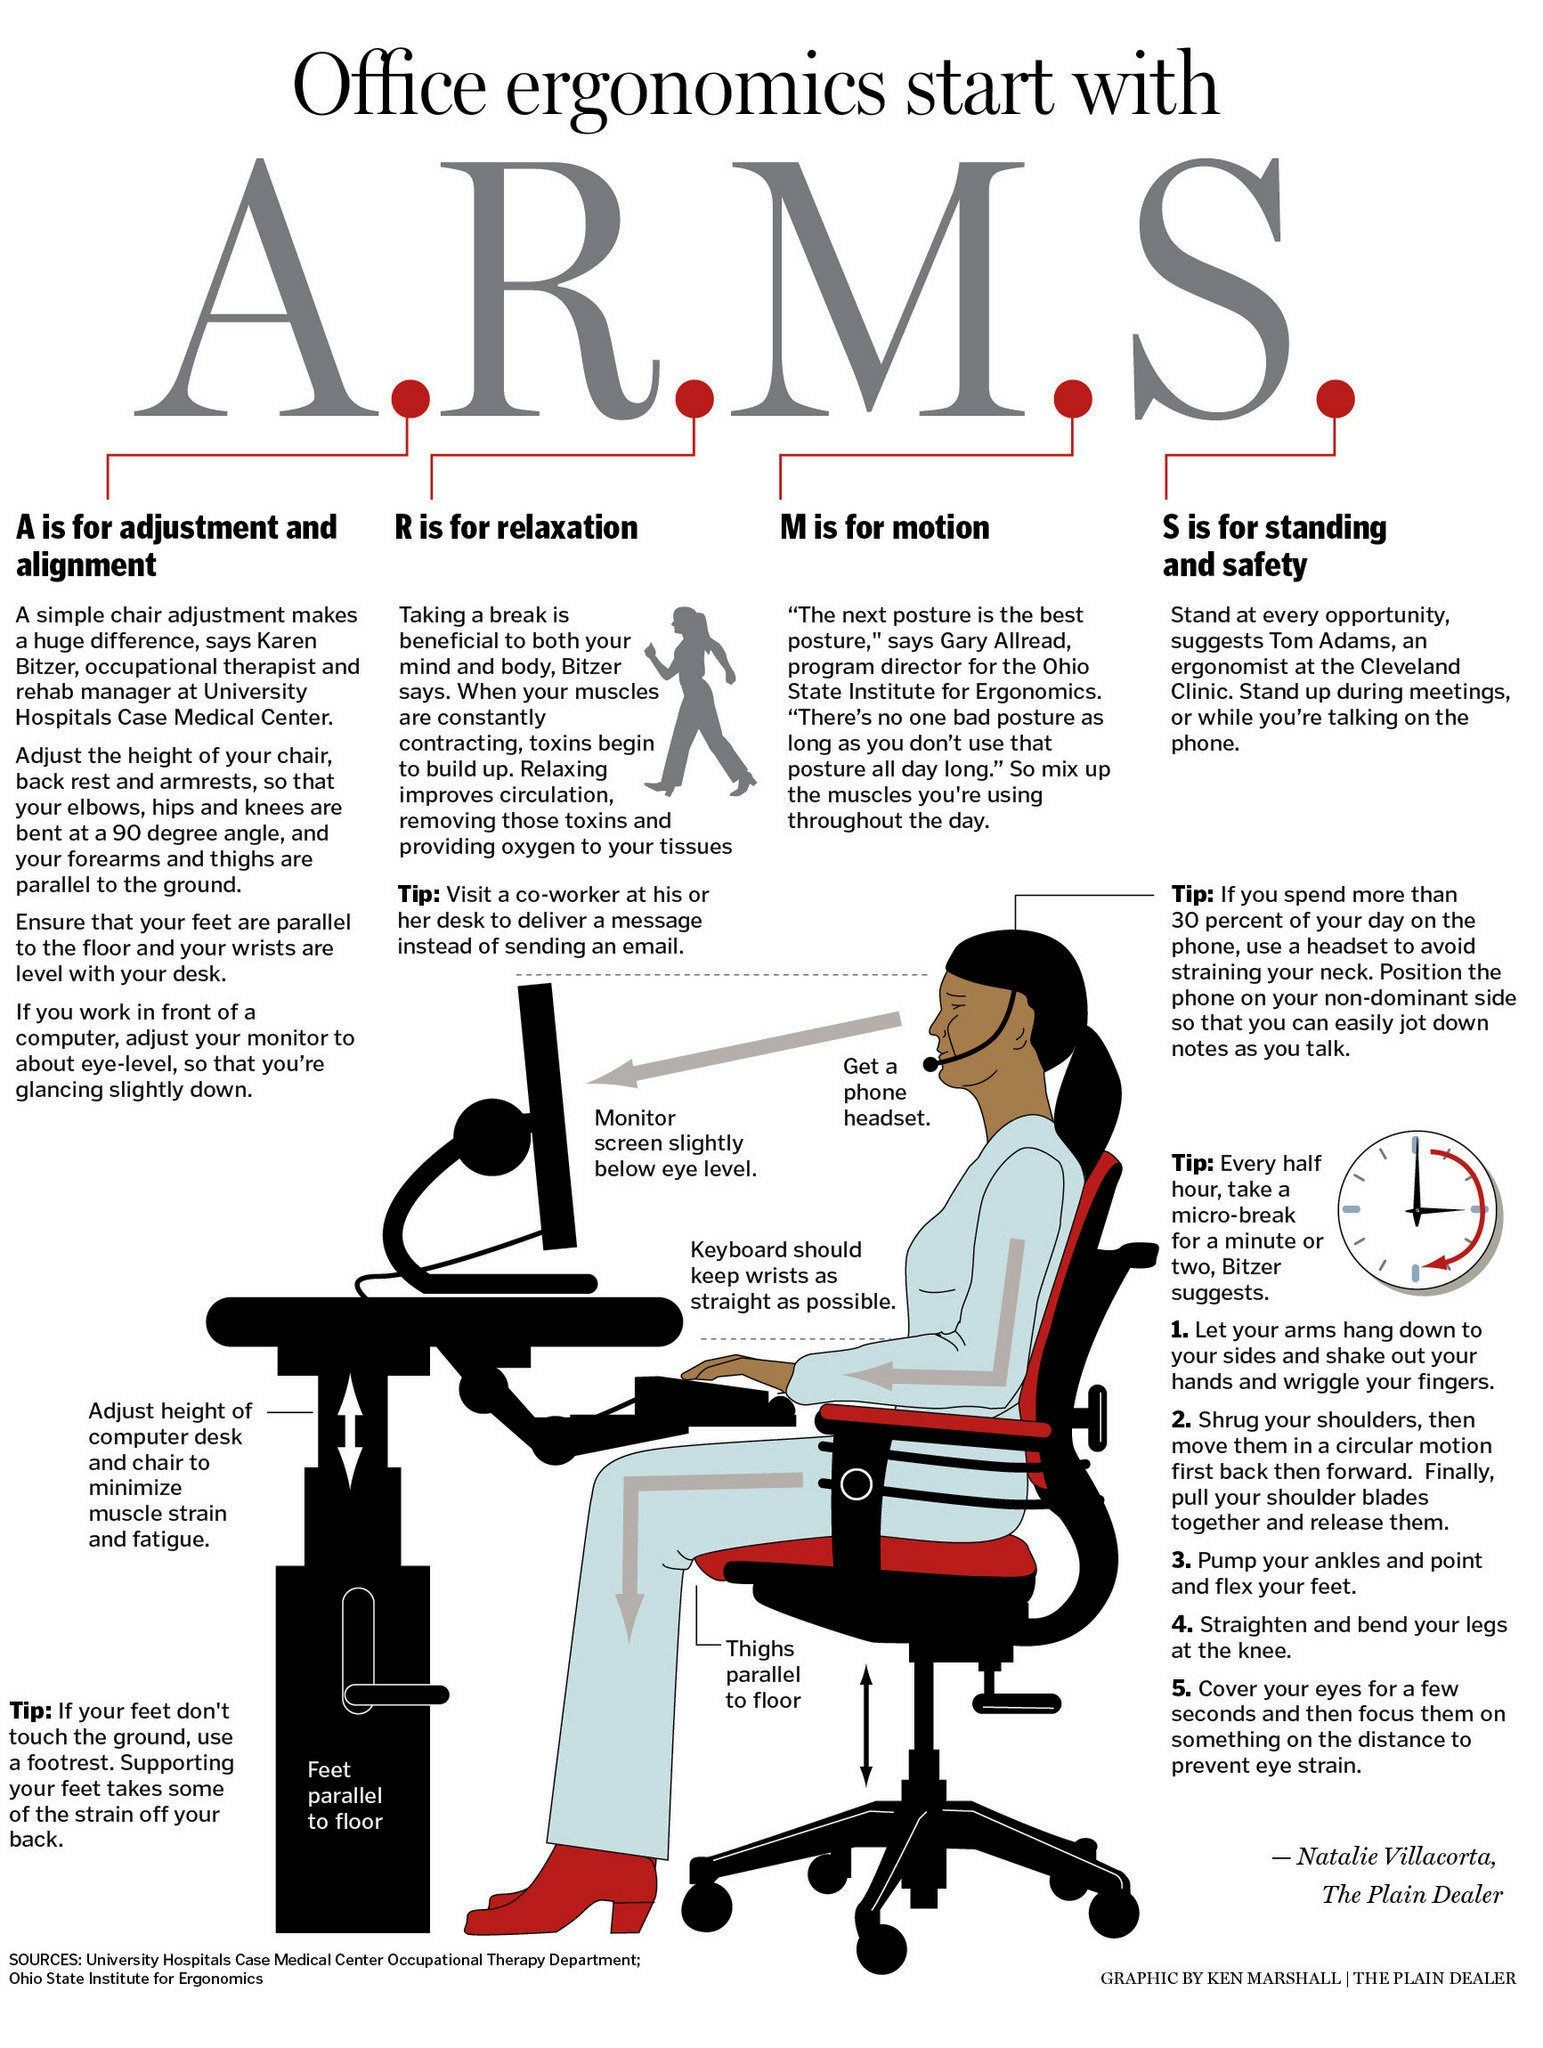 Infographic OfficeErgonomics start with A.R.M.S. A is